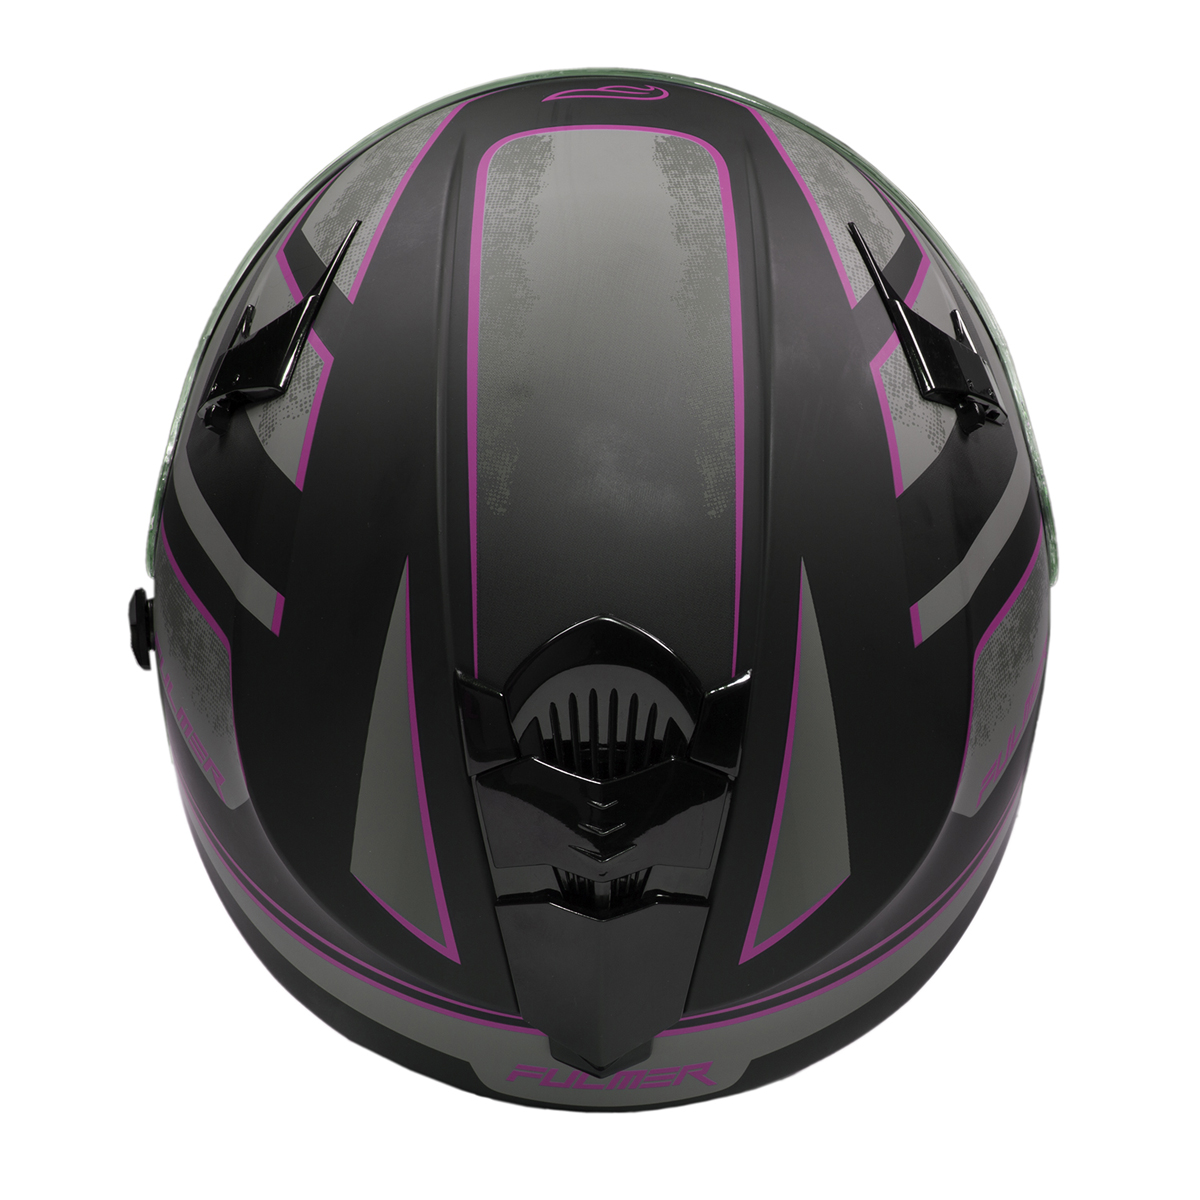 Fulmer-Adult-Full-Face-Motorcycle-Helmet-151-Pulse-DOT-Approved-Street-Bike thumbnail 28